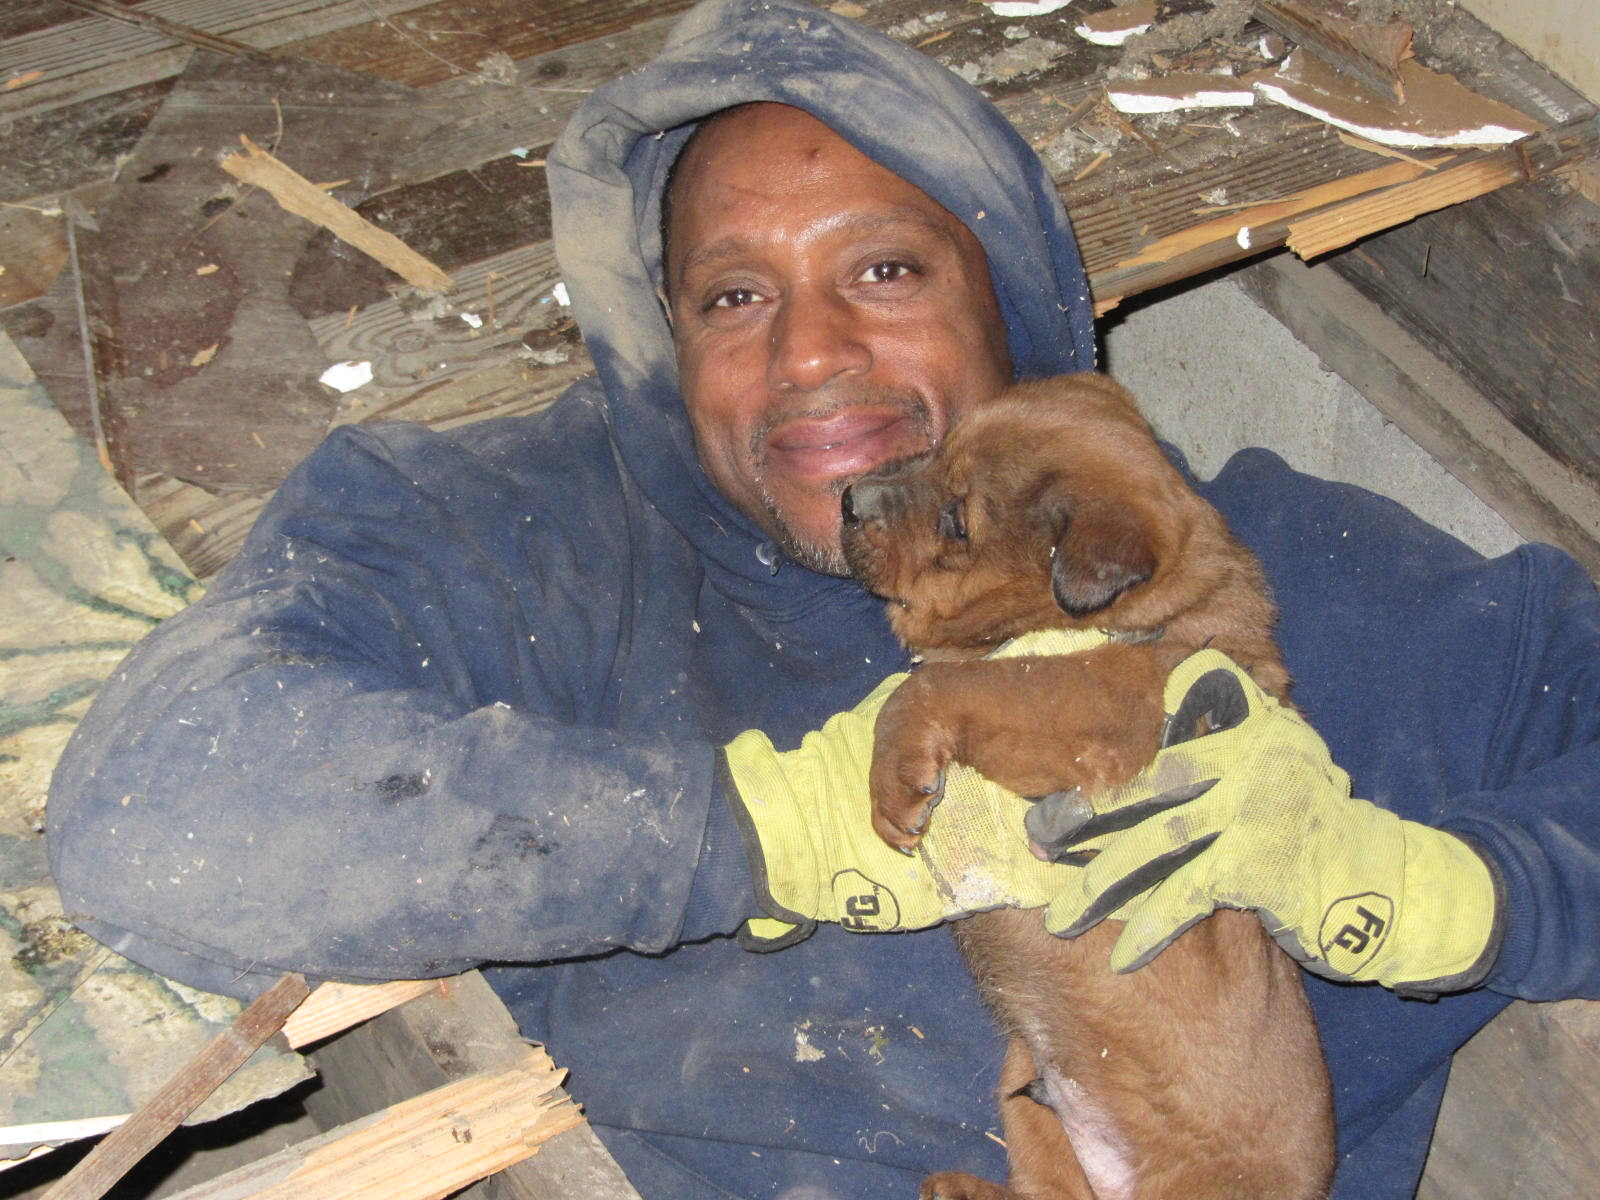 Community Outreach & Puppy Rescues in Impoverished East St. Louis